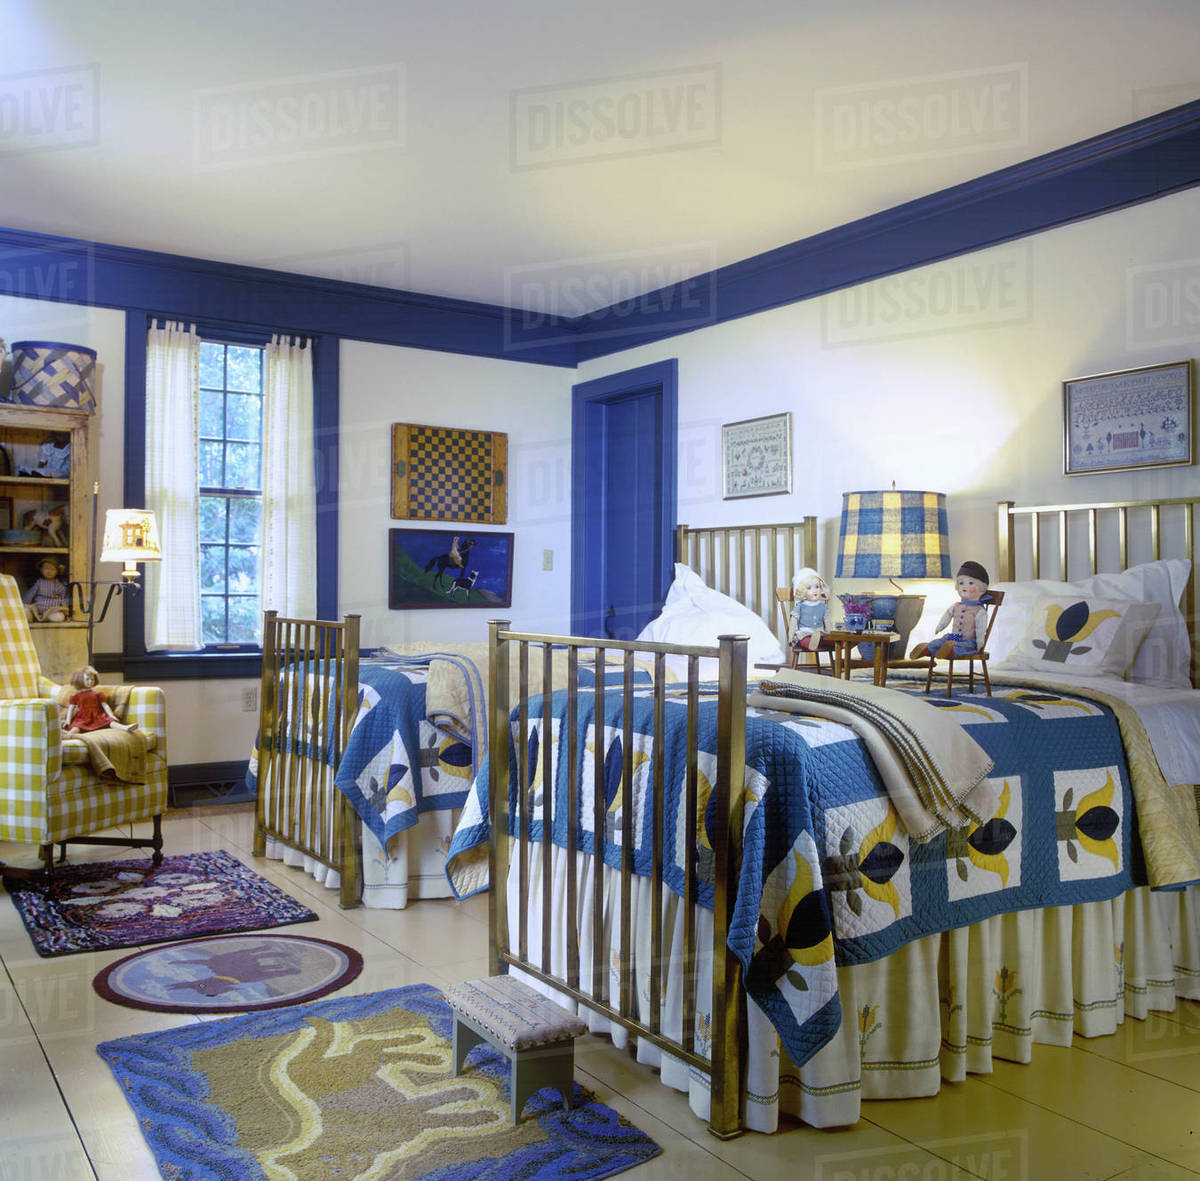 Children S Room Country Style Matching Quilts On Twin Beds Yellow And Blue Color Theme Br Painted Wide Plank Wood Floors Hooked Rugs